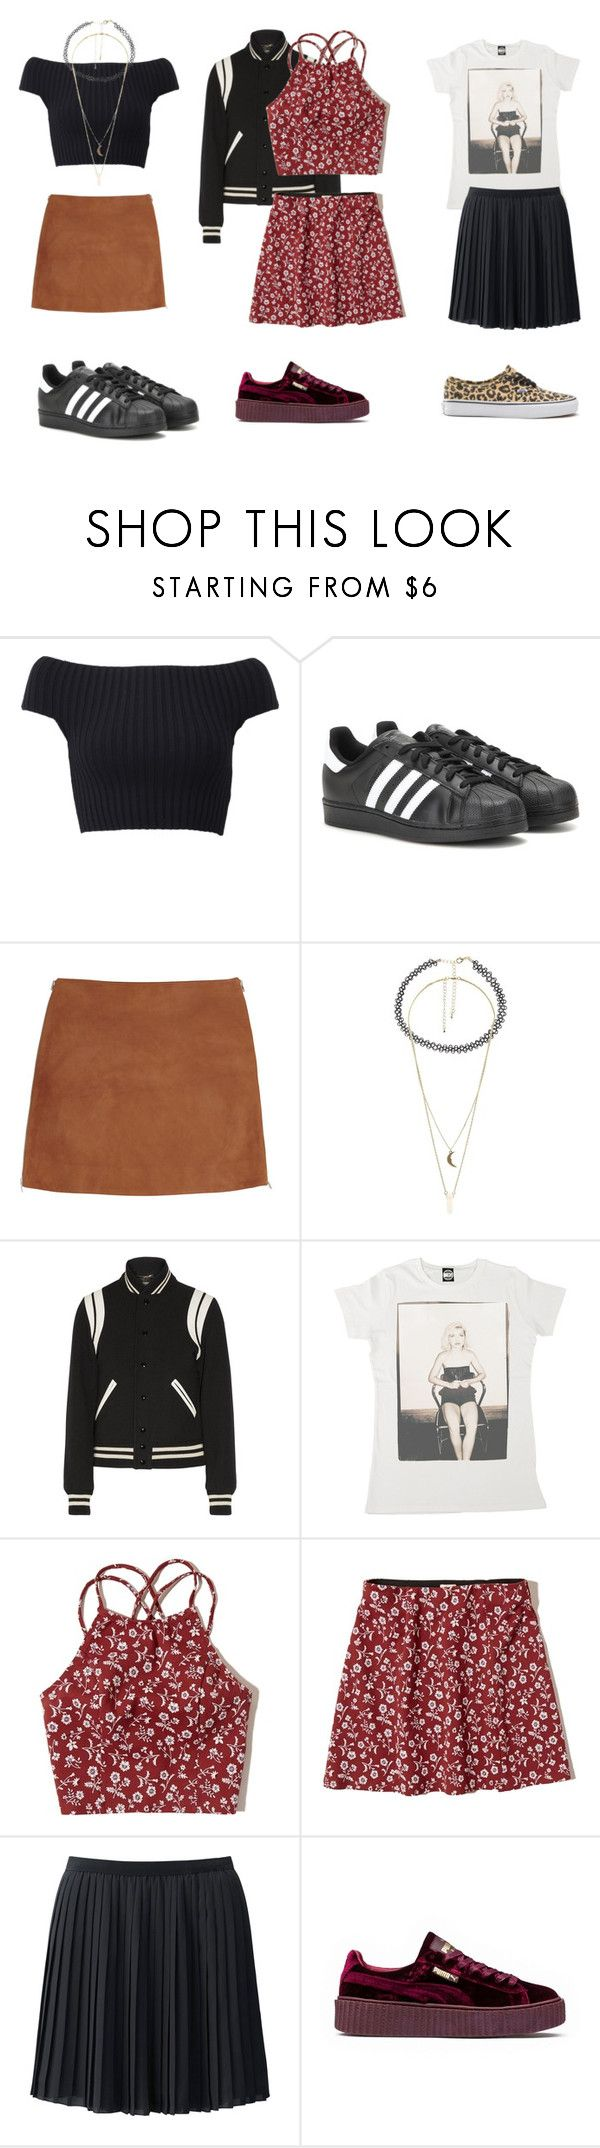 """""""party style"""" by anaunderground on Polyvore featuring moda, Michael Kors, adidas, Jonathan Saunders, Charlotte Russe, Yves Saint Laurent, Hollister Co., Uniqlo, Puma e Vans"""